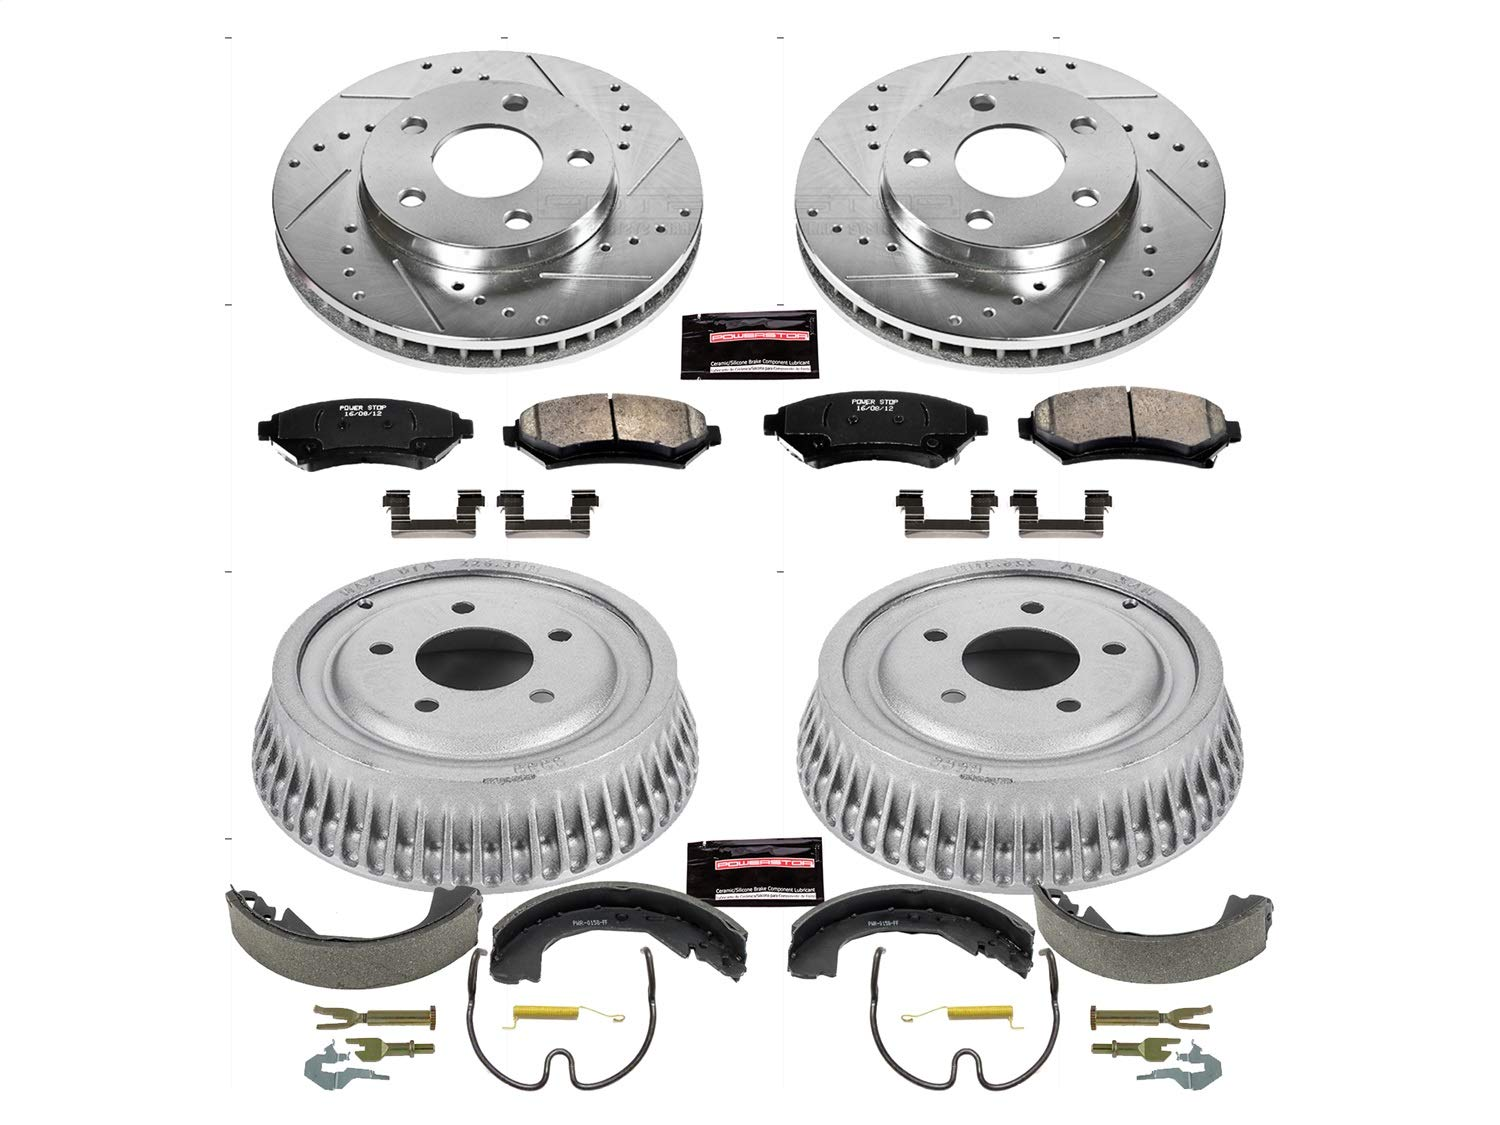 Power Stop Front /& Rear K15121DK Performance Pad Rotor Drum and Shoe Kits